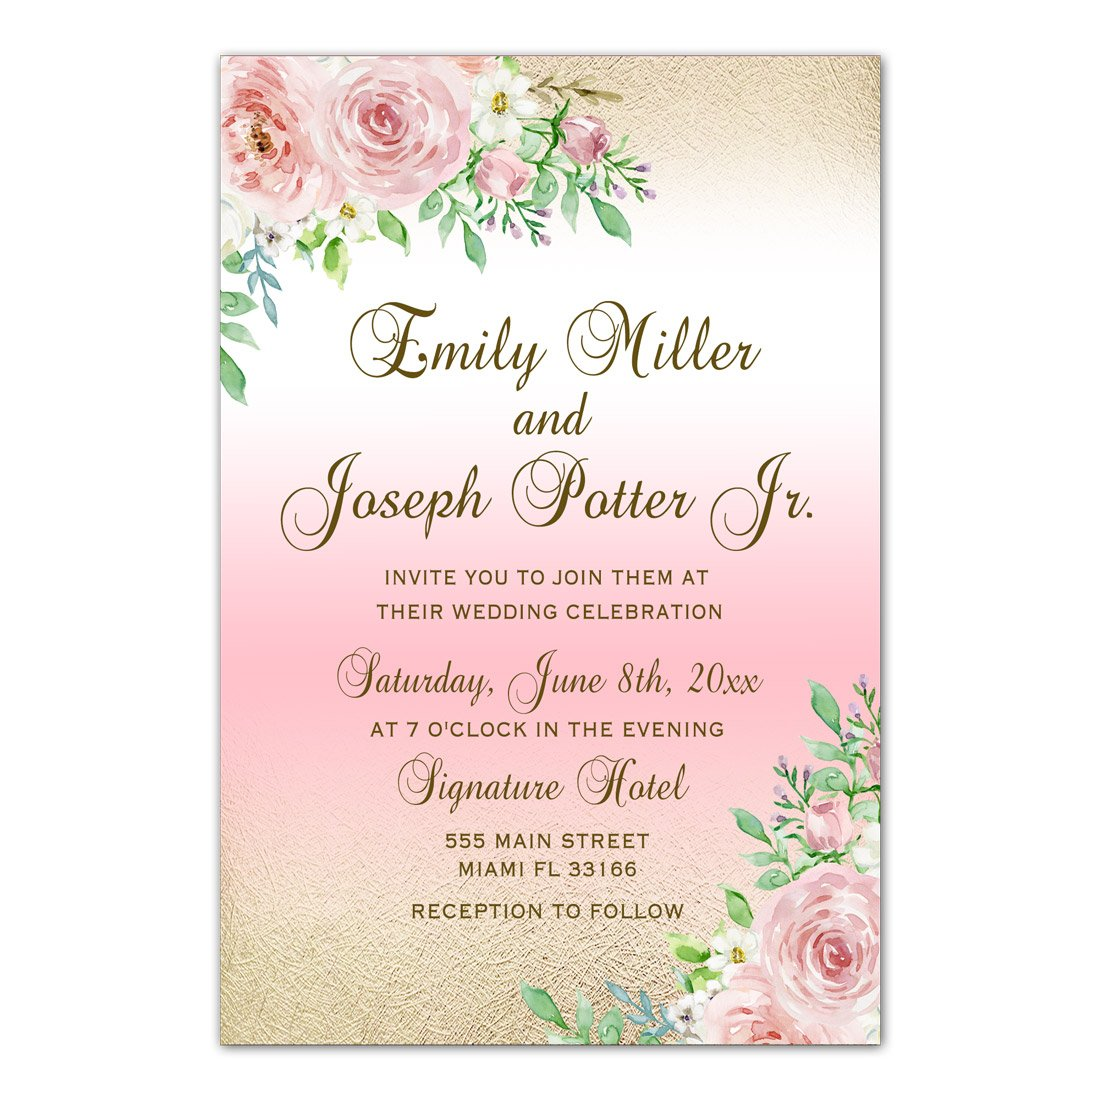 Personalised Wedding Invitations Pink Floral Wedding Invite or Evening Invite